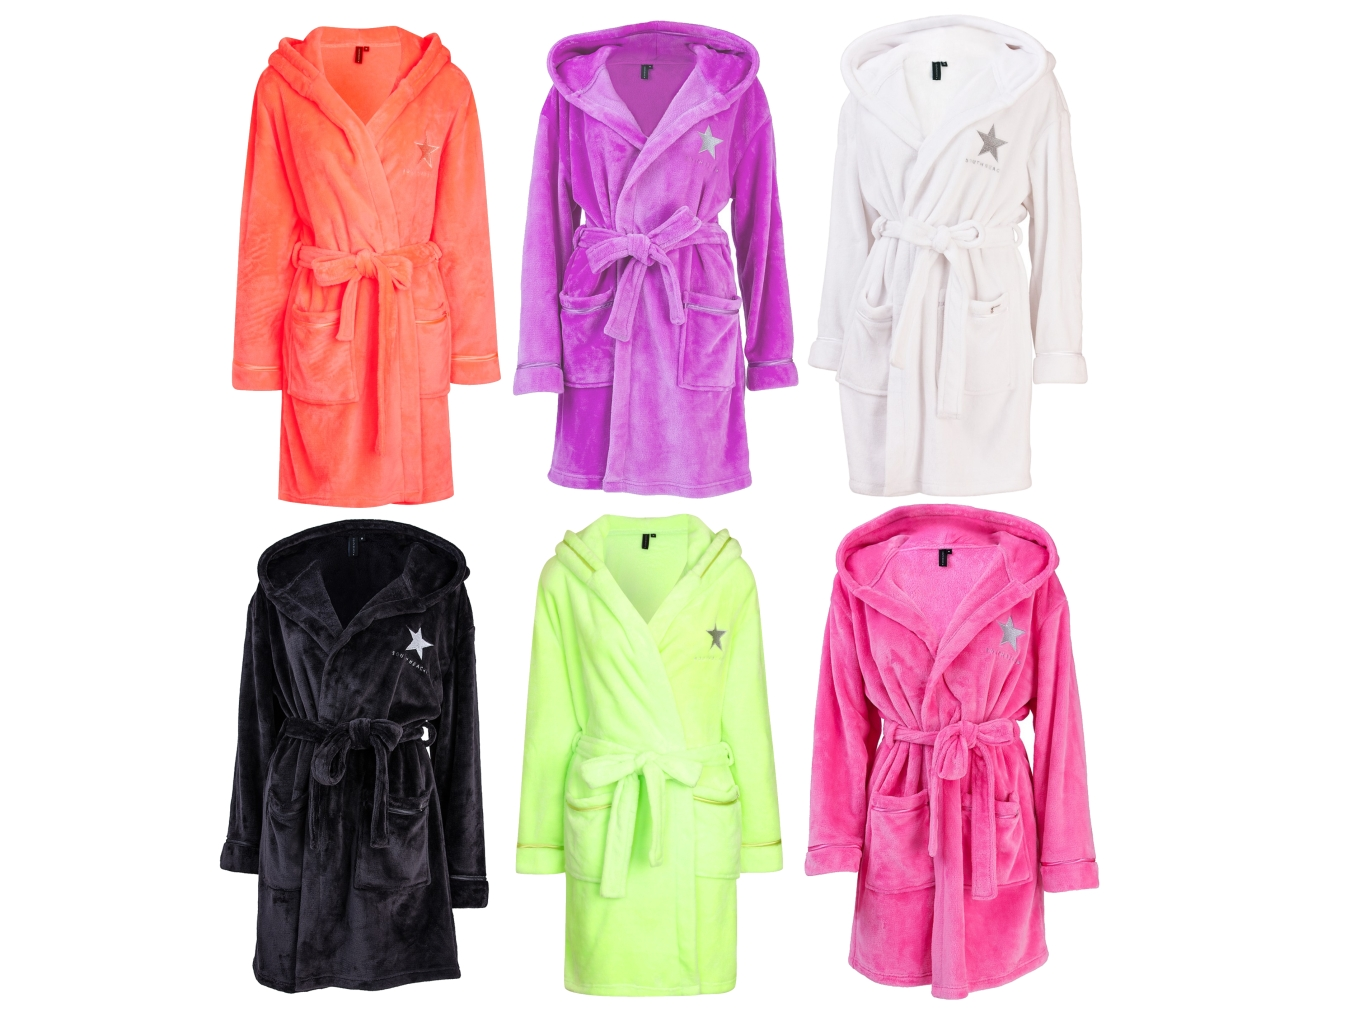 SOUTH BEACH STAR WOMENS HOODED SHORT BATH ROBE DRESSING GOWN LADIES ... 084b7dc74